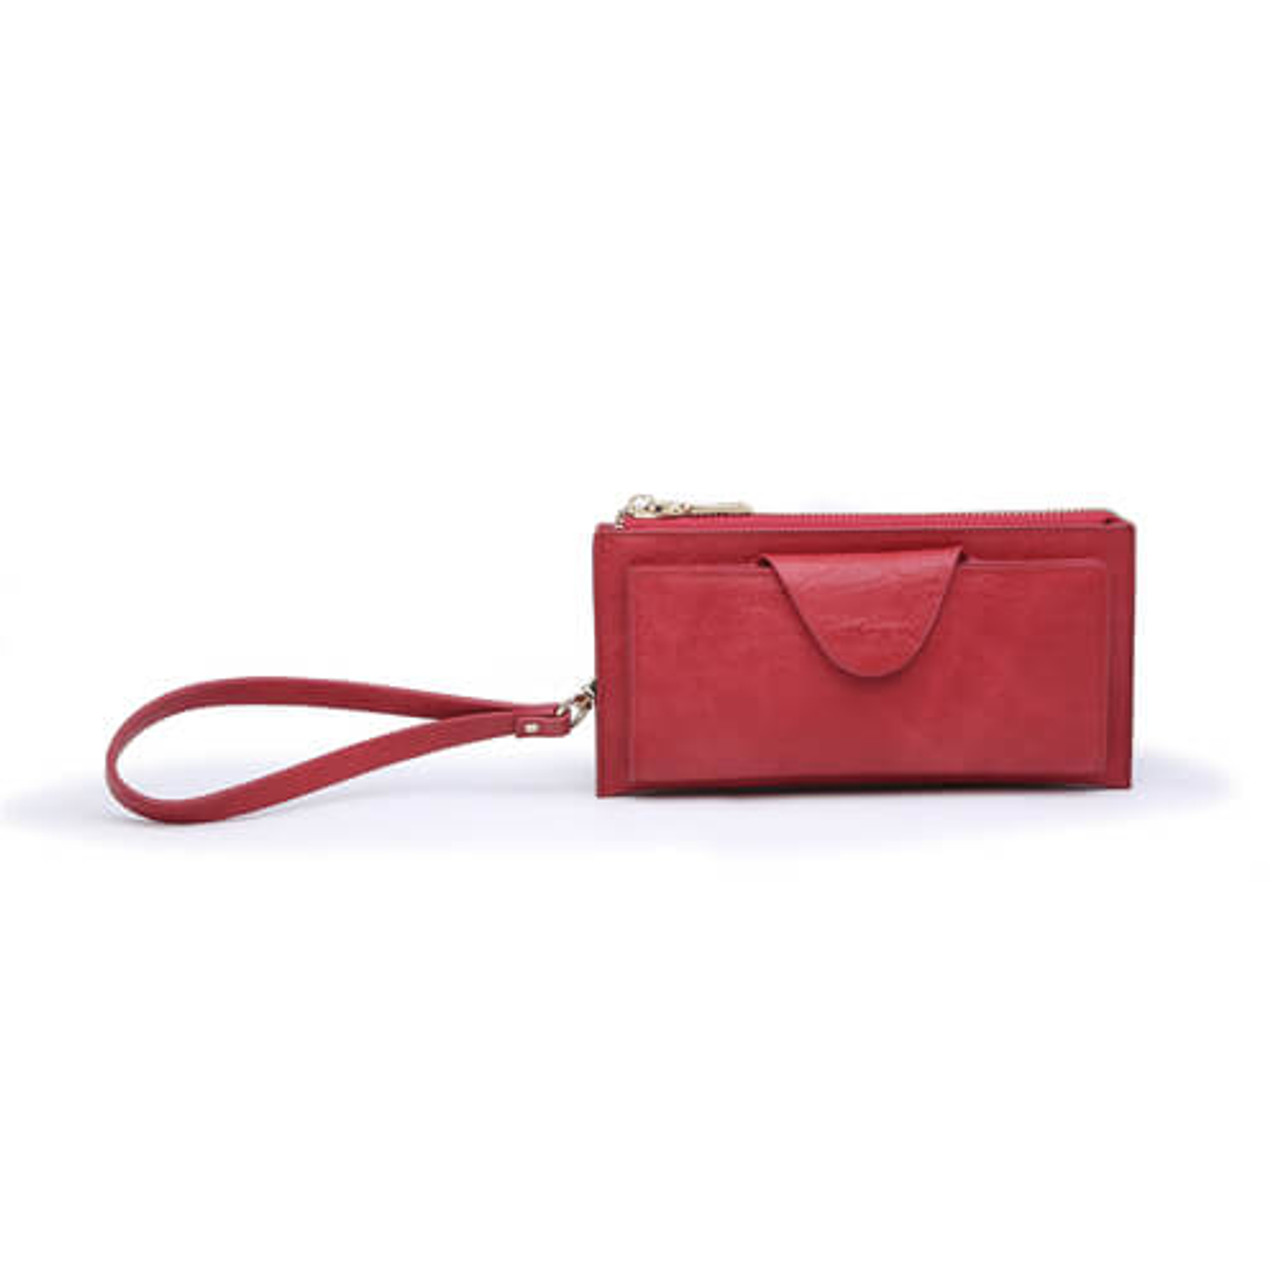 The Kyla wallet is RFID protected and offers 12 Card and ID slots and 2 slip pockets behind a snap closure, as well as three pockets sharing zip closure; wristlet strap also included.